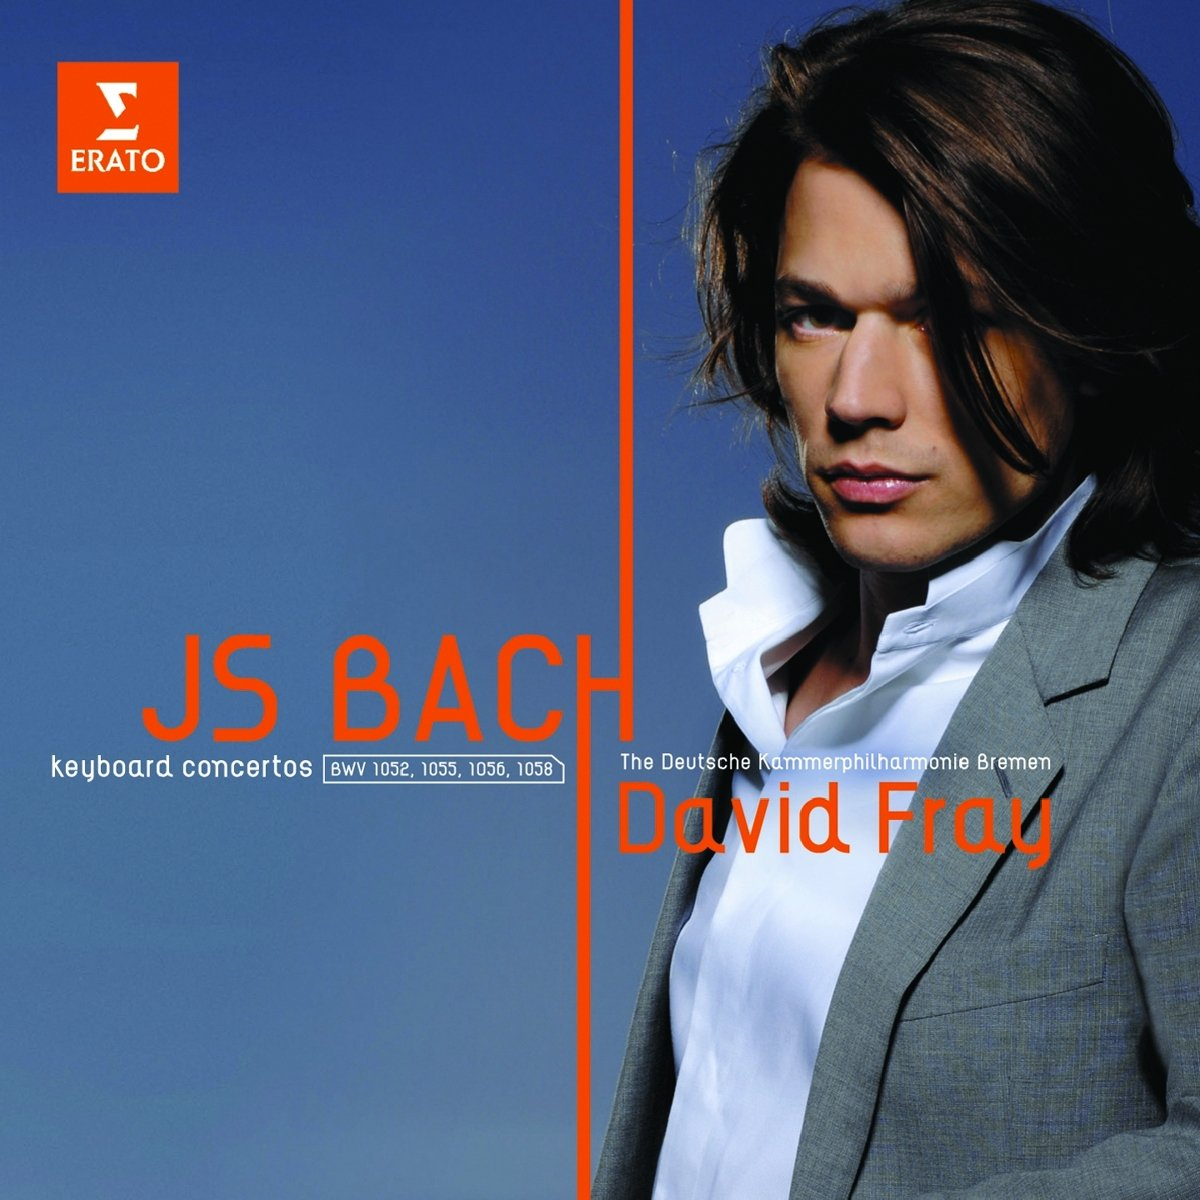 CD : David Fray - Piano Concertos (CD)